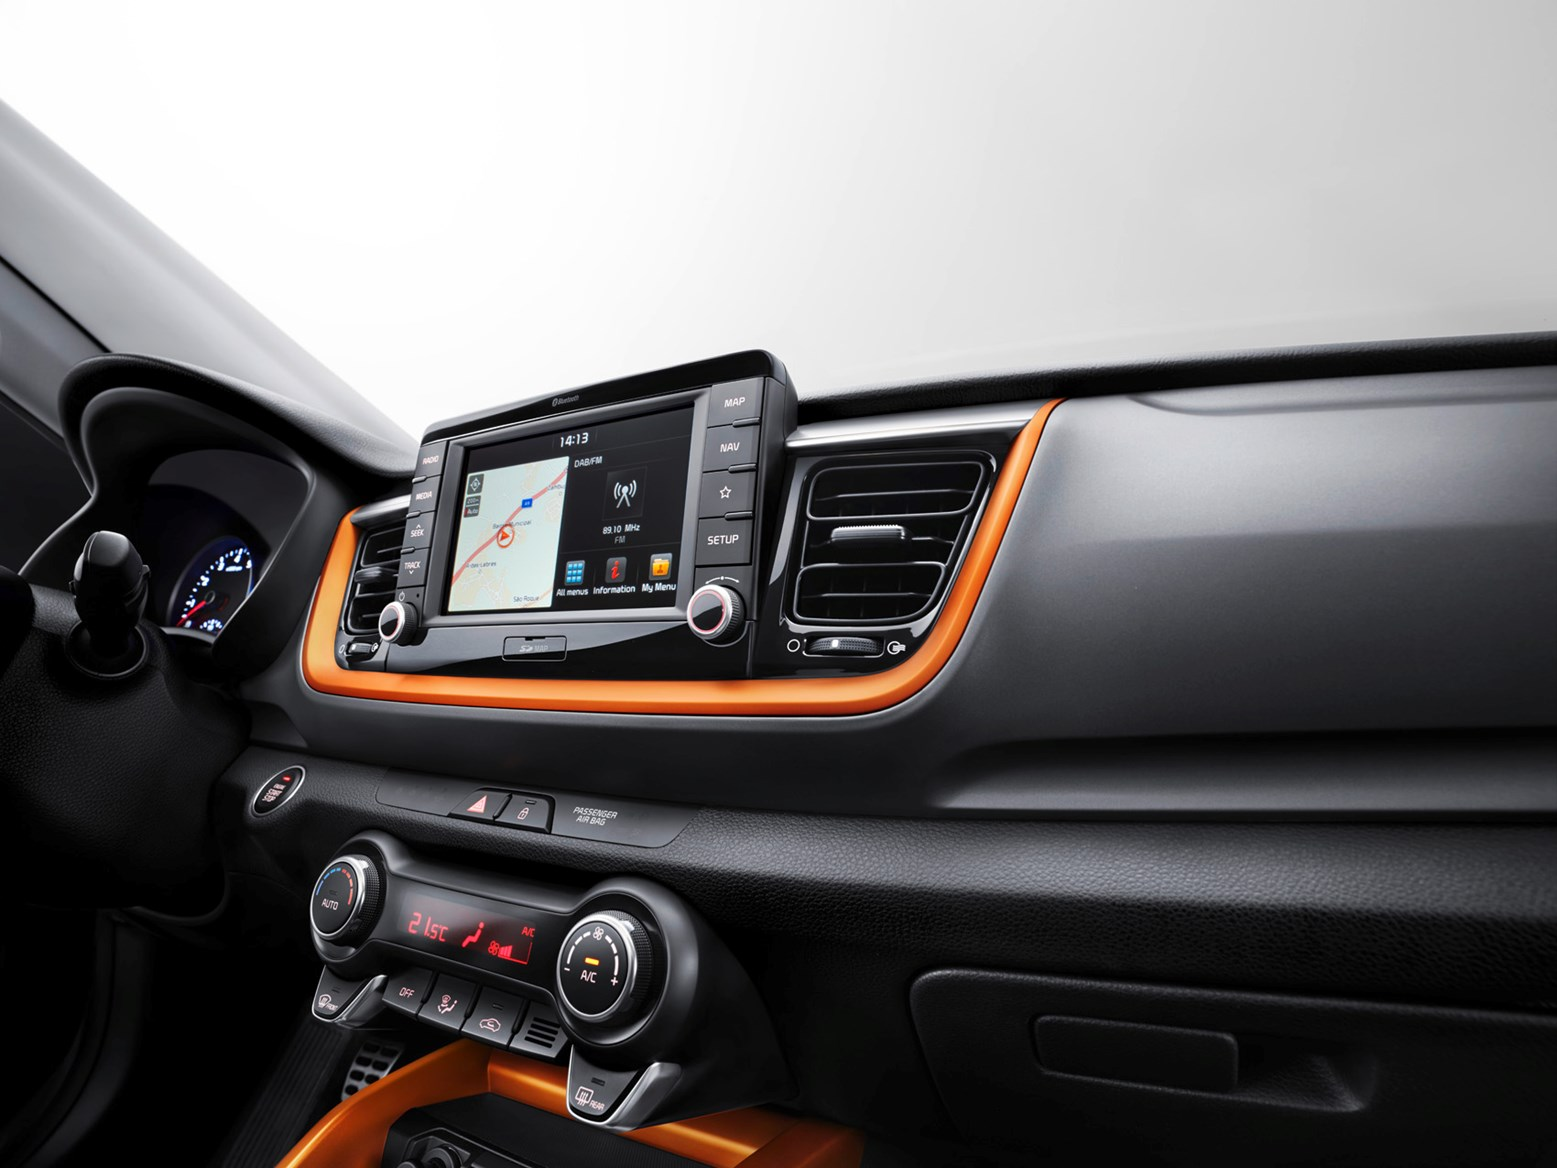 Dash on the Stonic can feature highlights to match contrasting bodywork